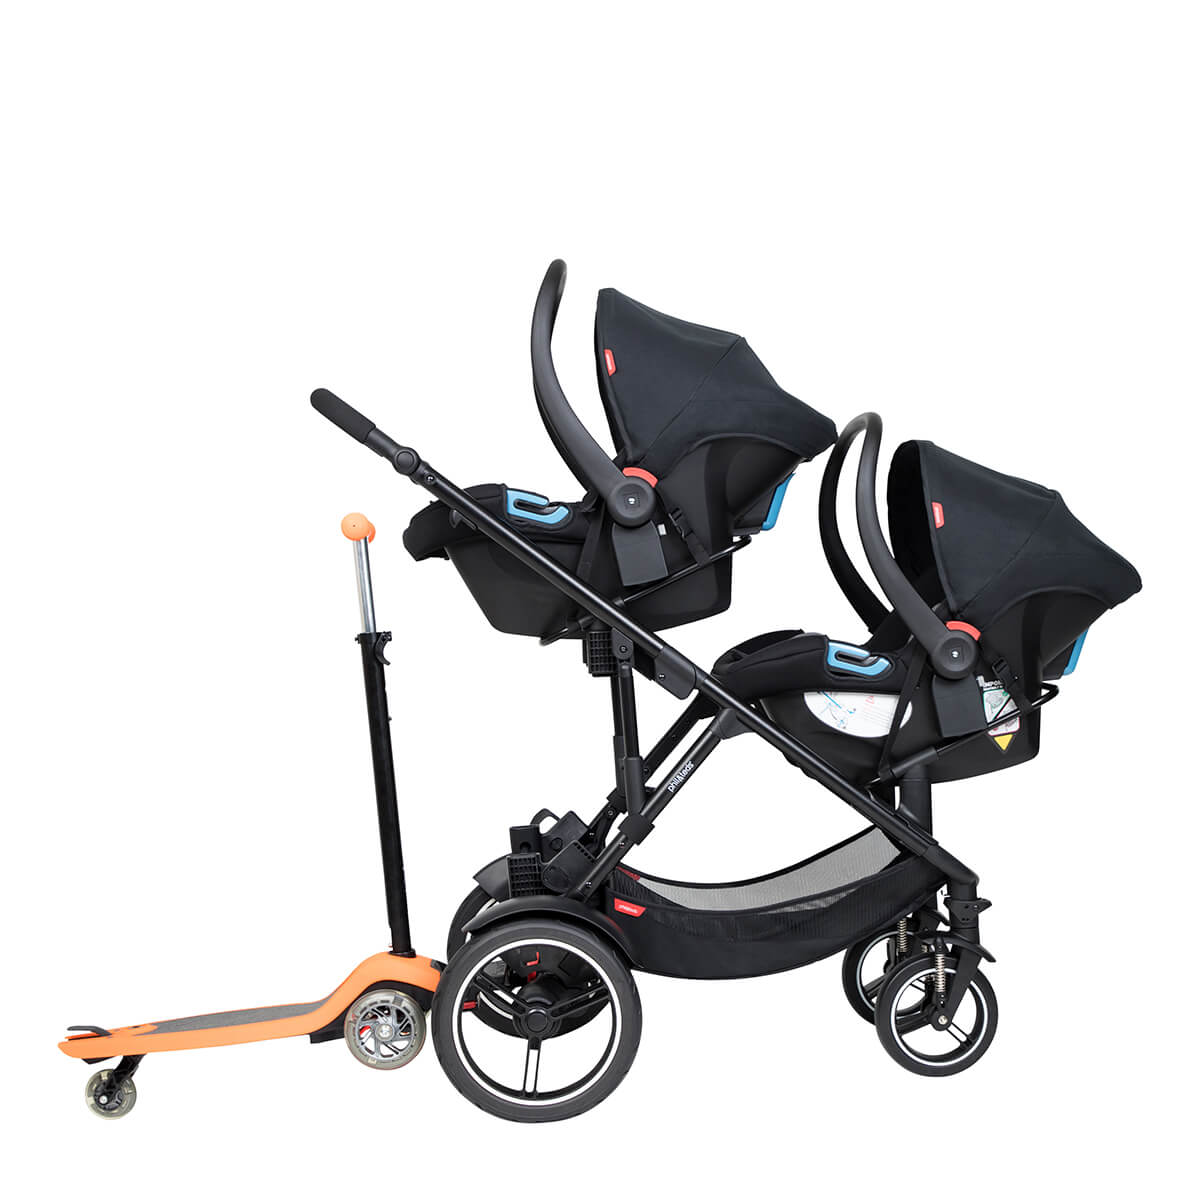 https://cdn.accentuate.io/4546158821481/19119639625833/philteds-voyager-buggy-with-double-travel-systems-and-freerider-stroller-board-in-the-rear-v1625778596500.jpg?1200x1200